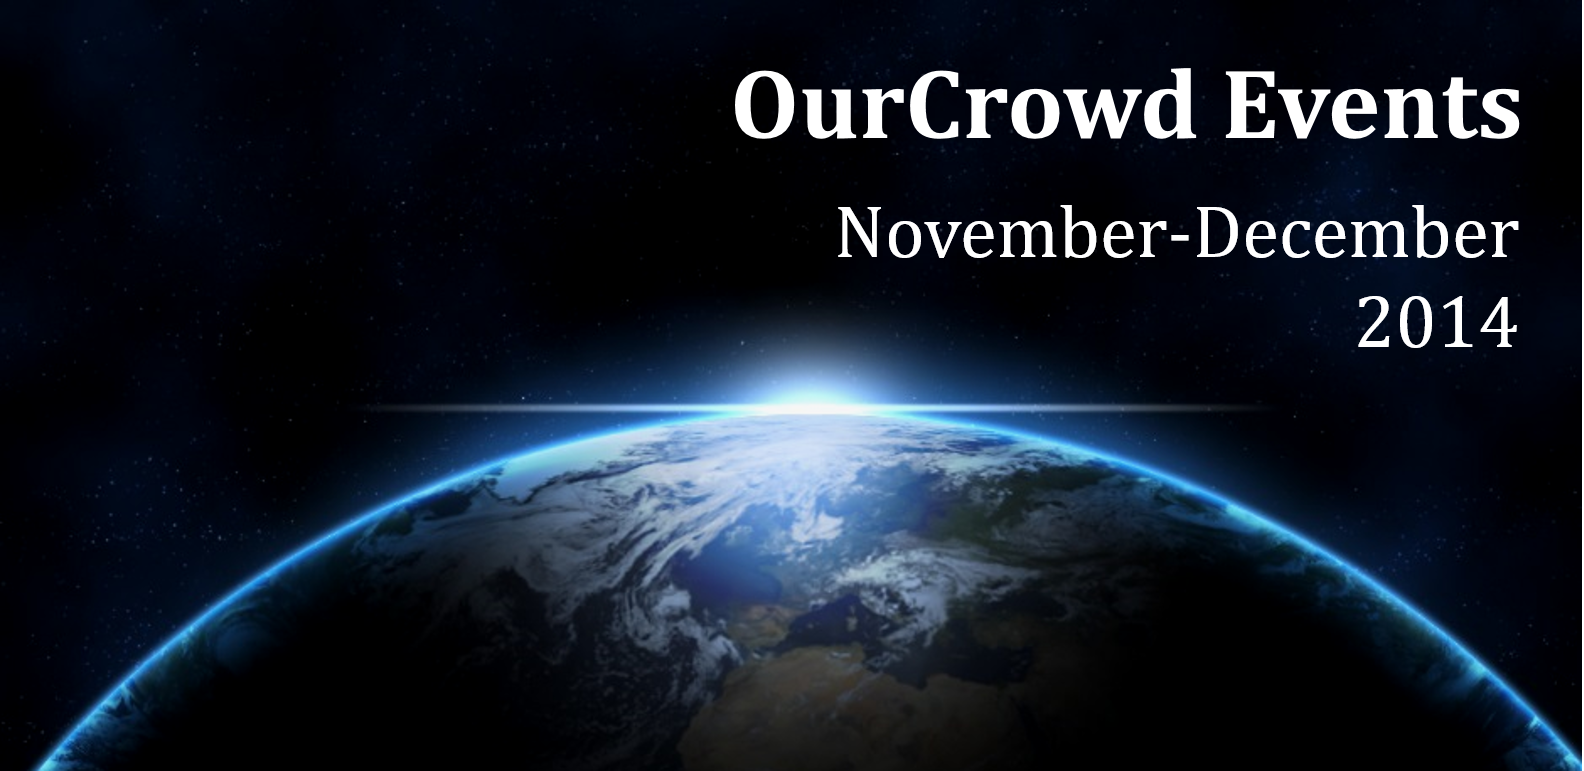 OurCrowd Events November-December